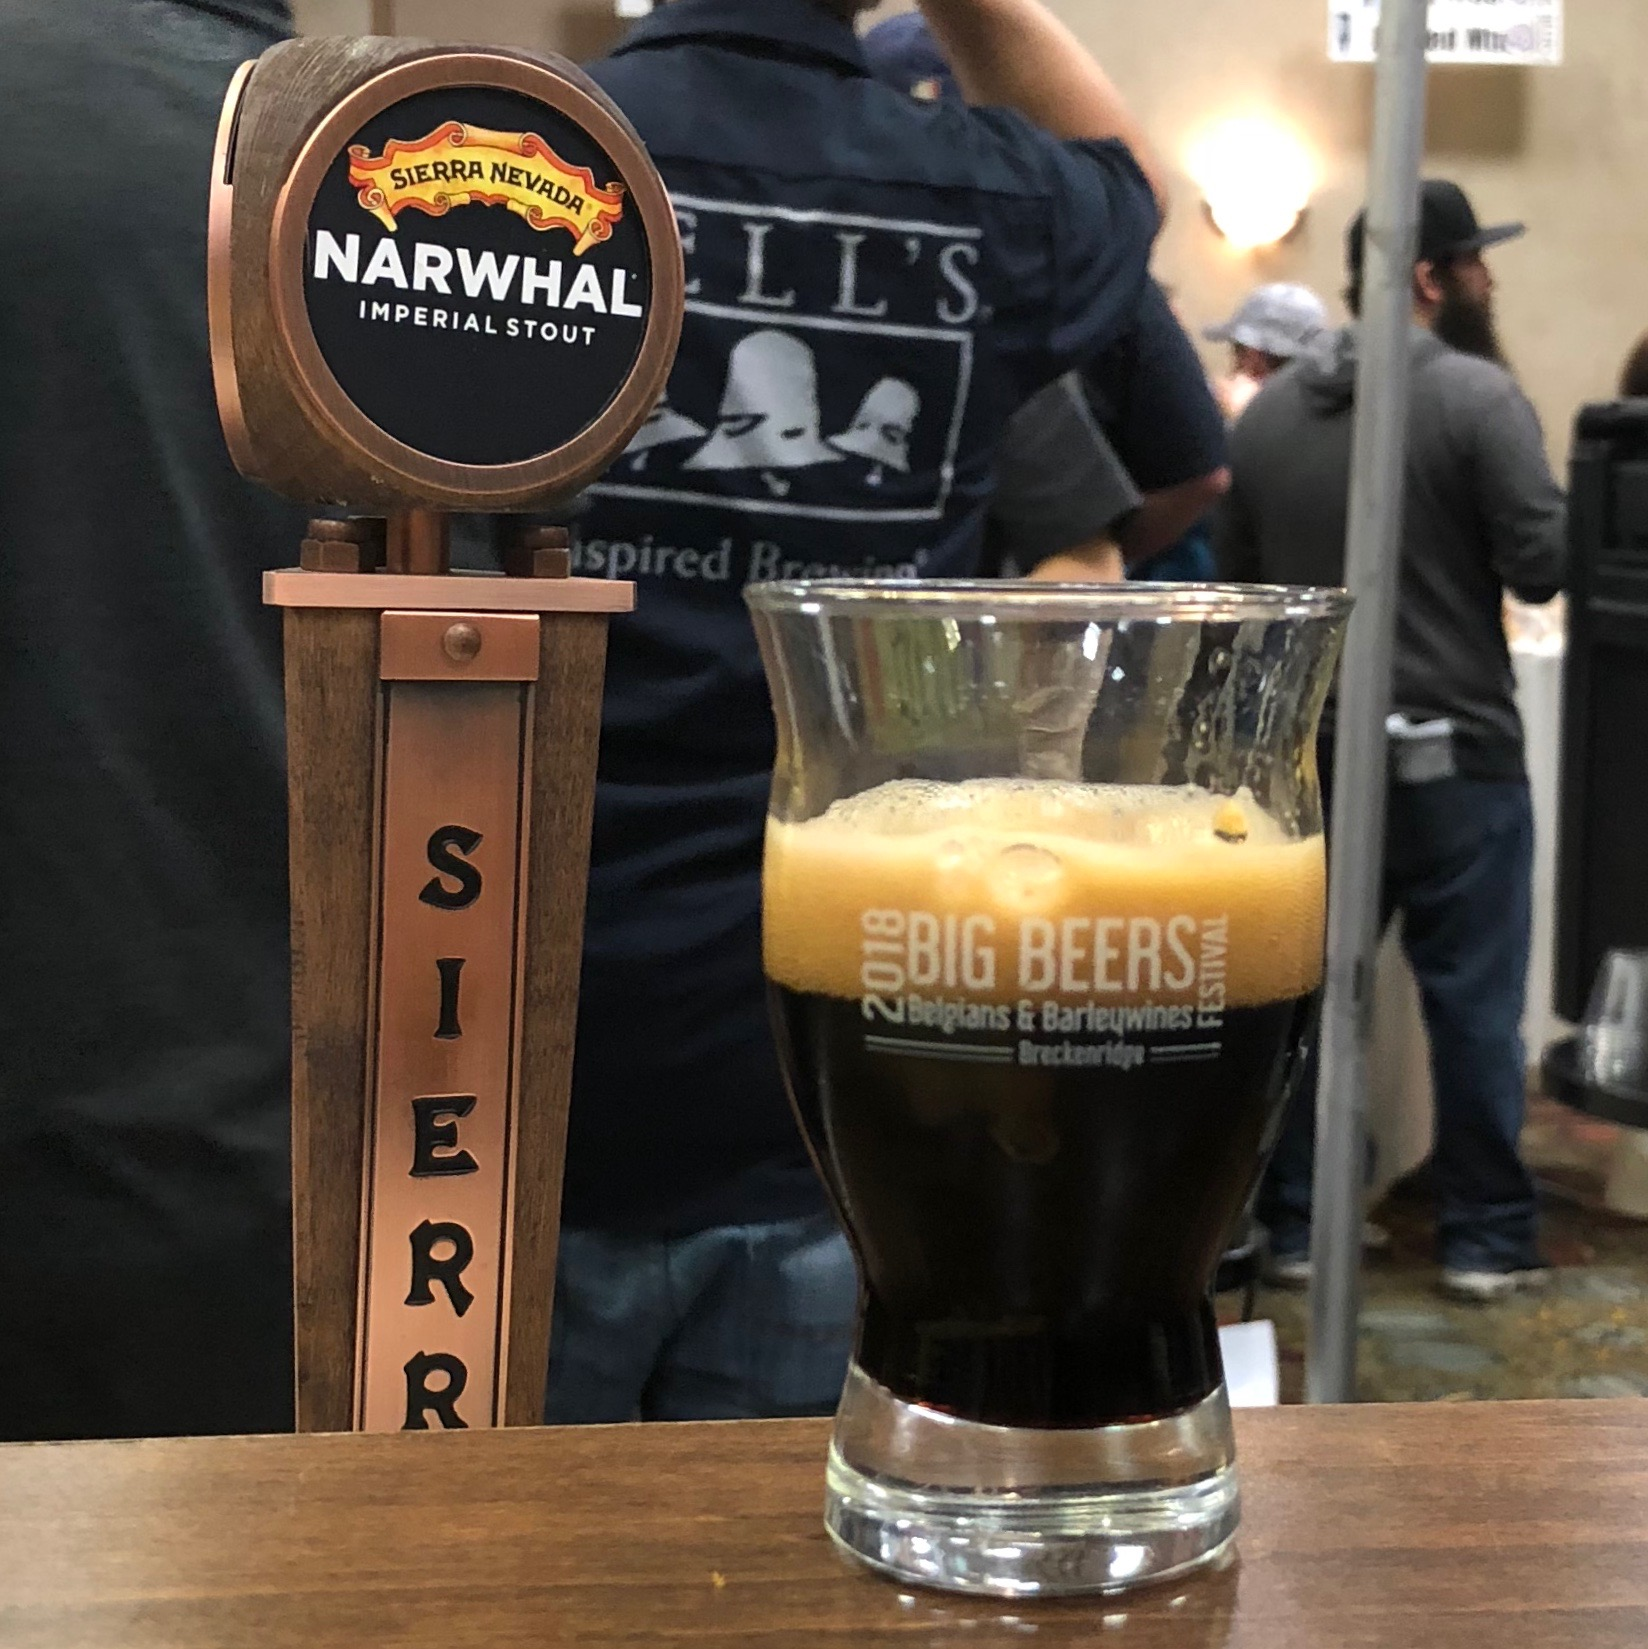 Always great to have a pour of Sierra Nevada Brewing Narwhal while at Big Beers, Belgians & Barleywines Festival.